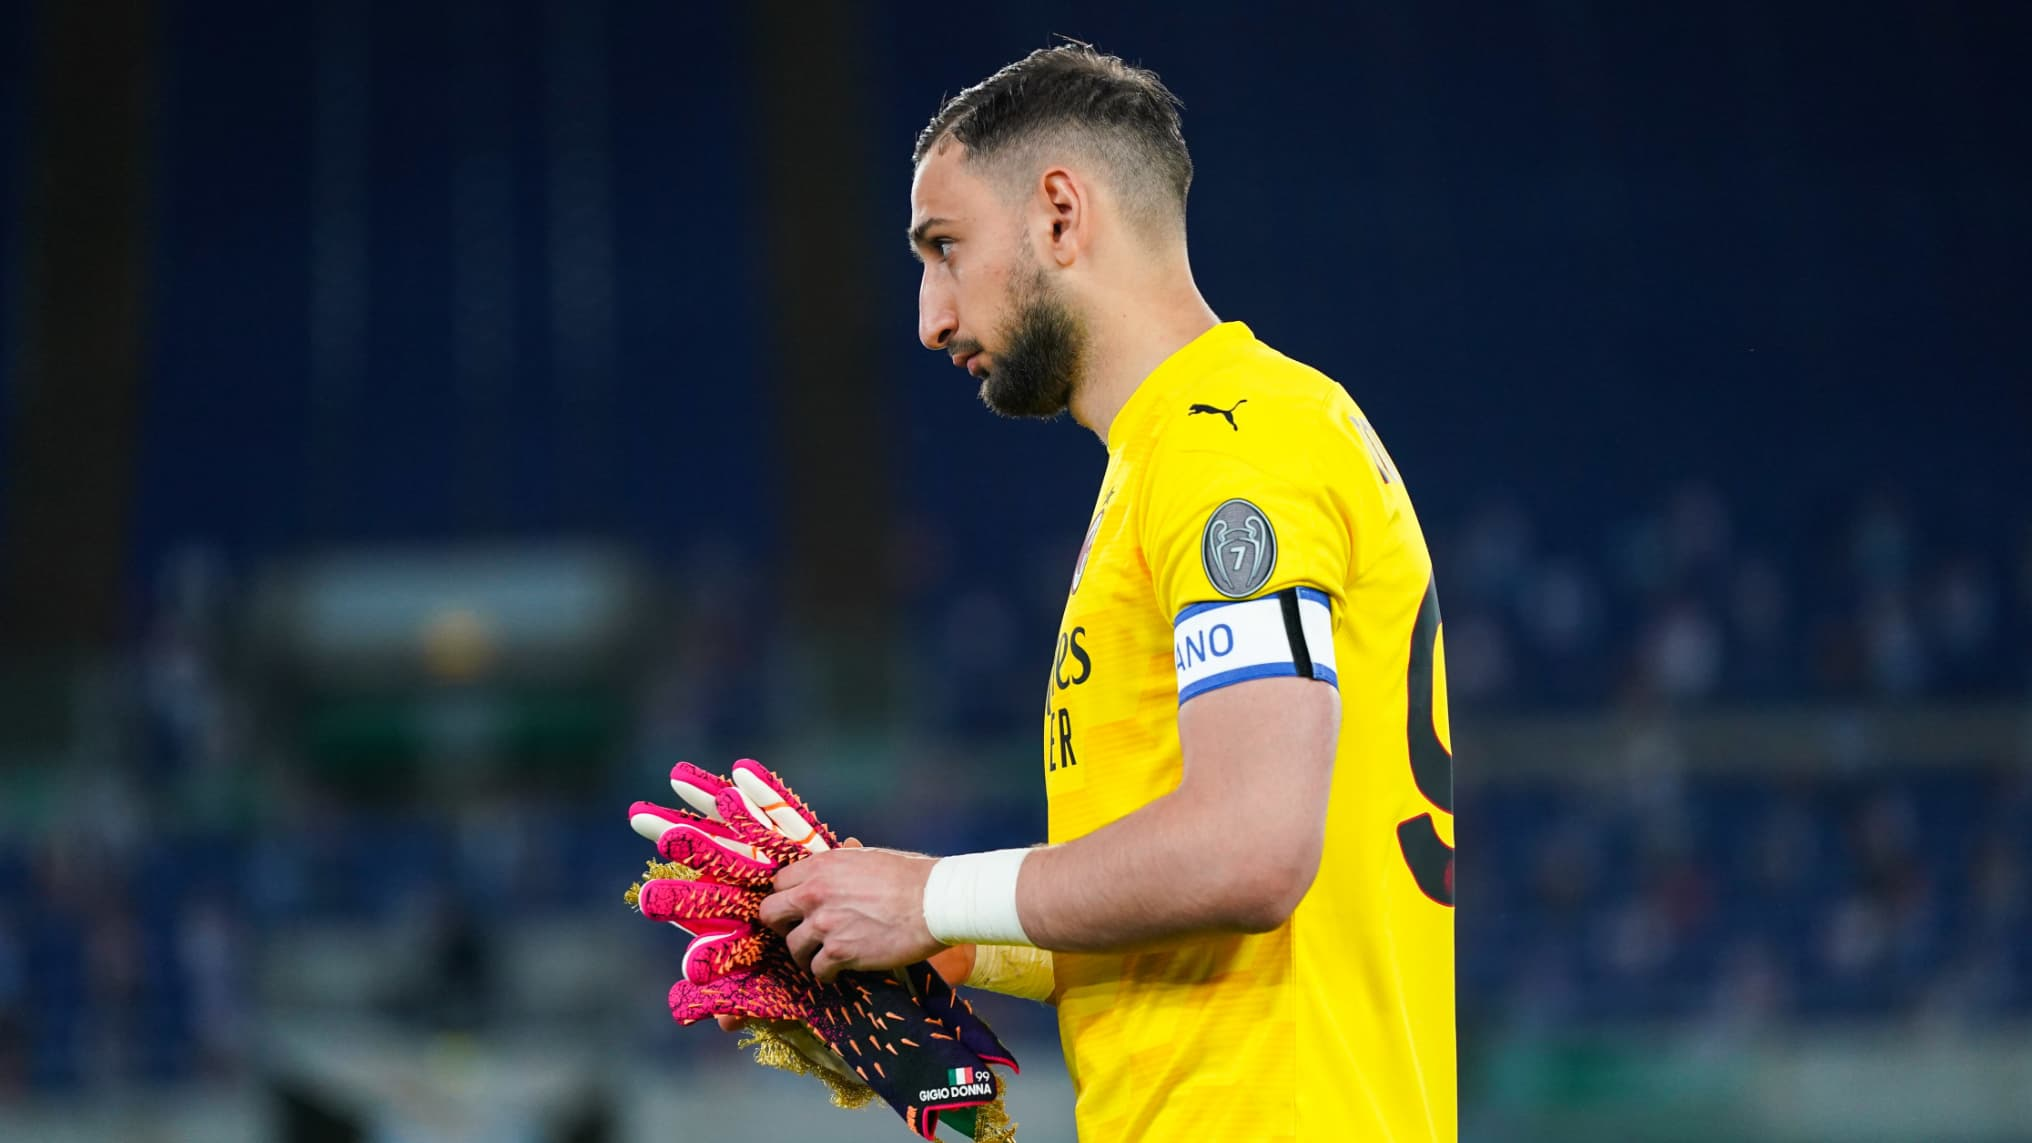 Ac Milan Donnarumma Is Controversial After The Slap Against Lazio The Indian Paper